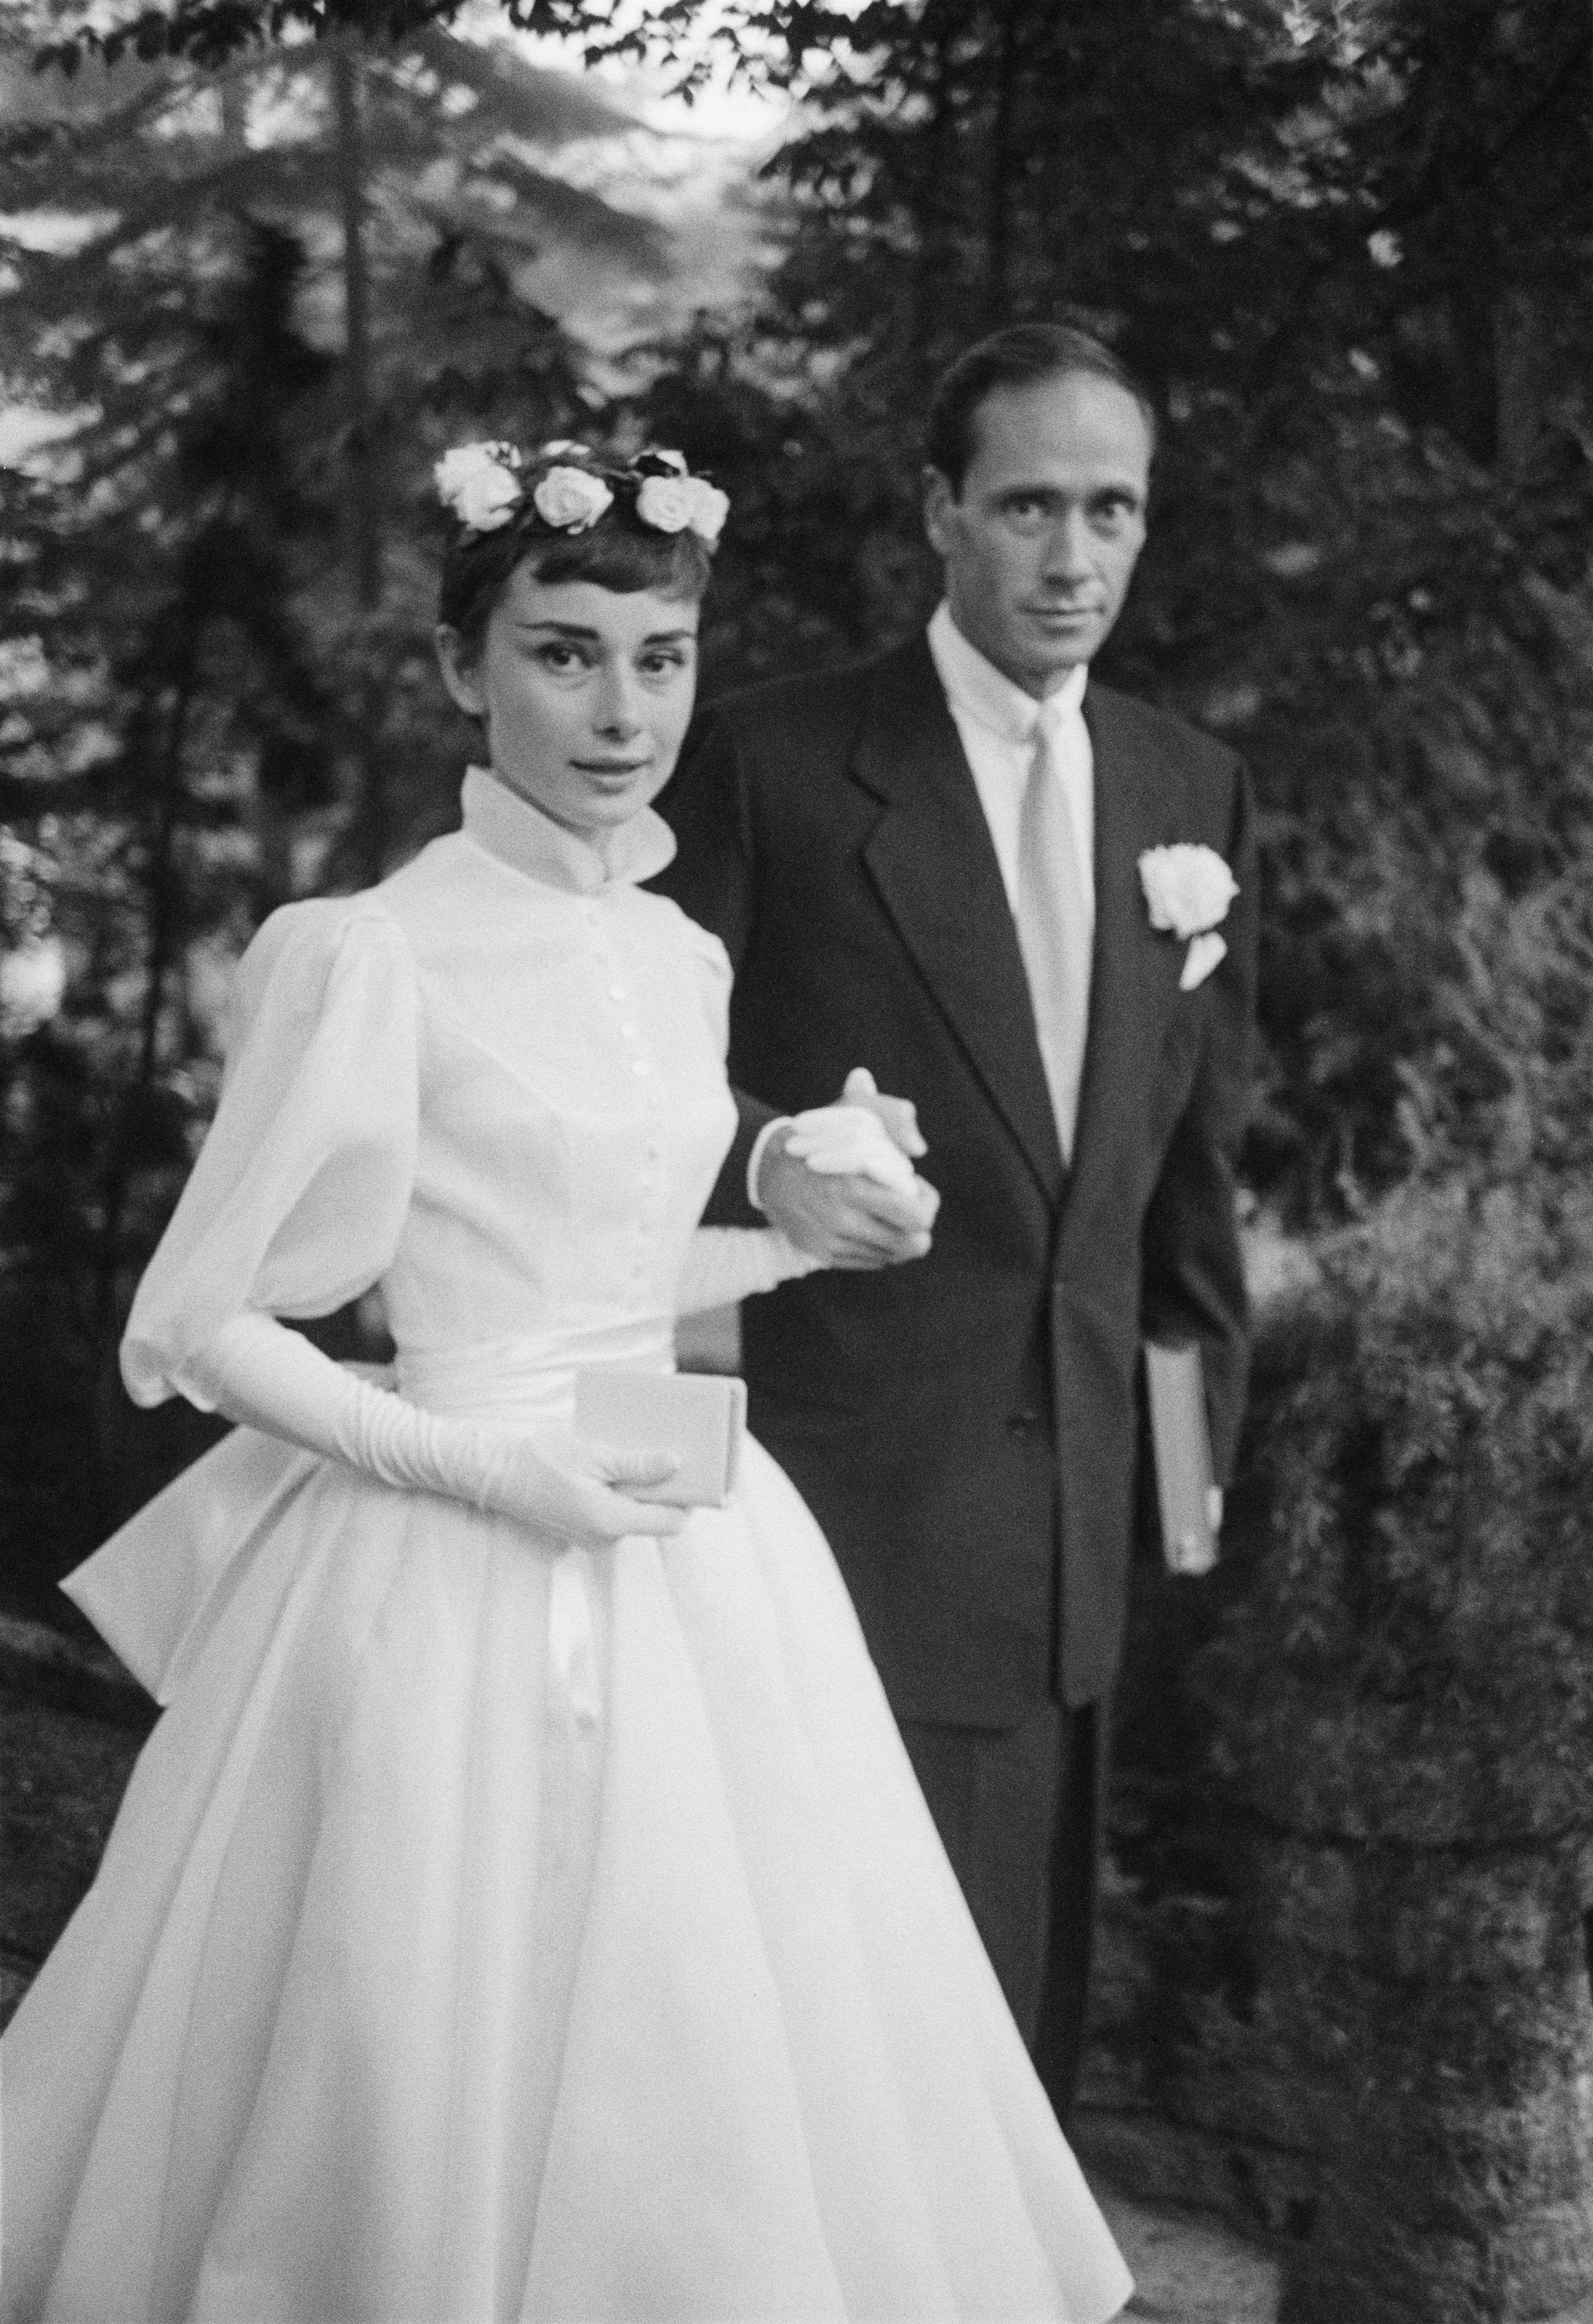 Audrey Hepburn and Mel Ferrer on their wedding day in 1954 | Getty Images